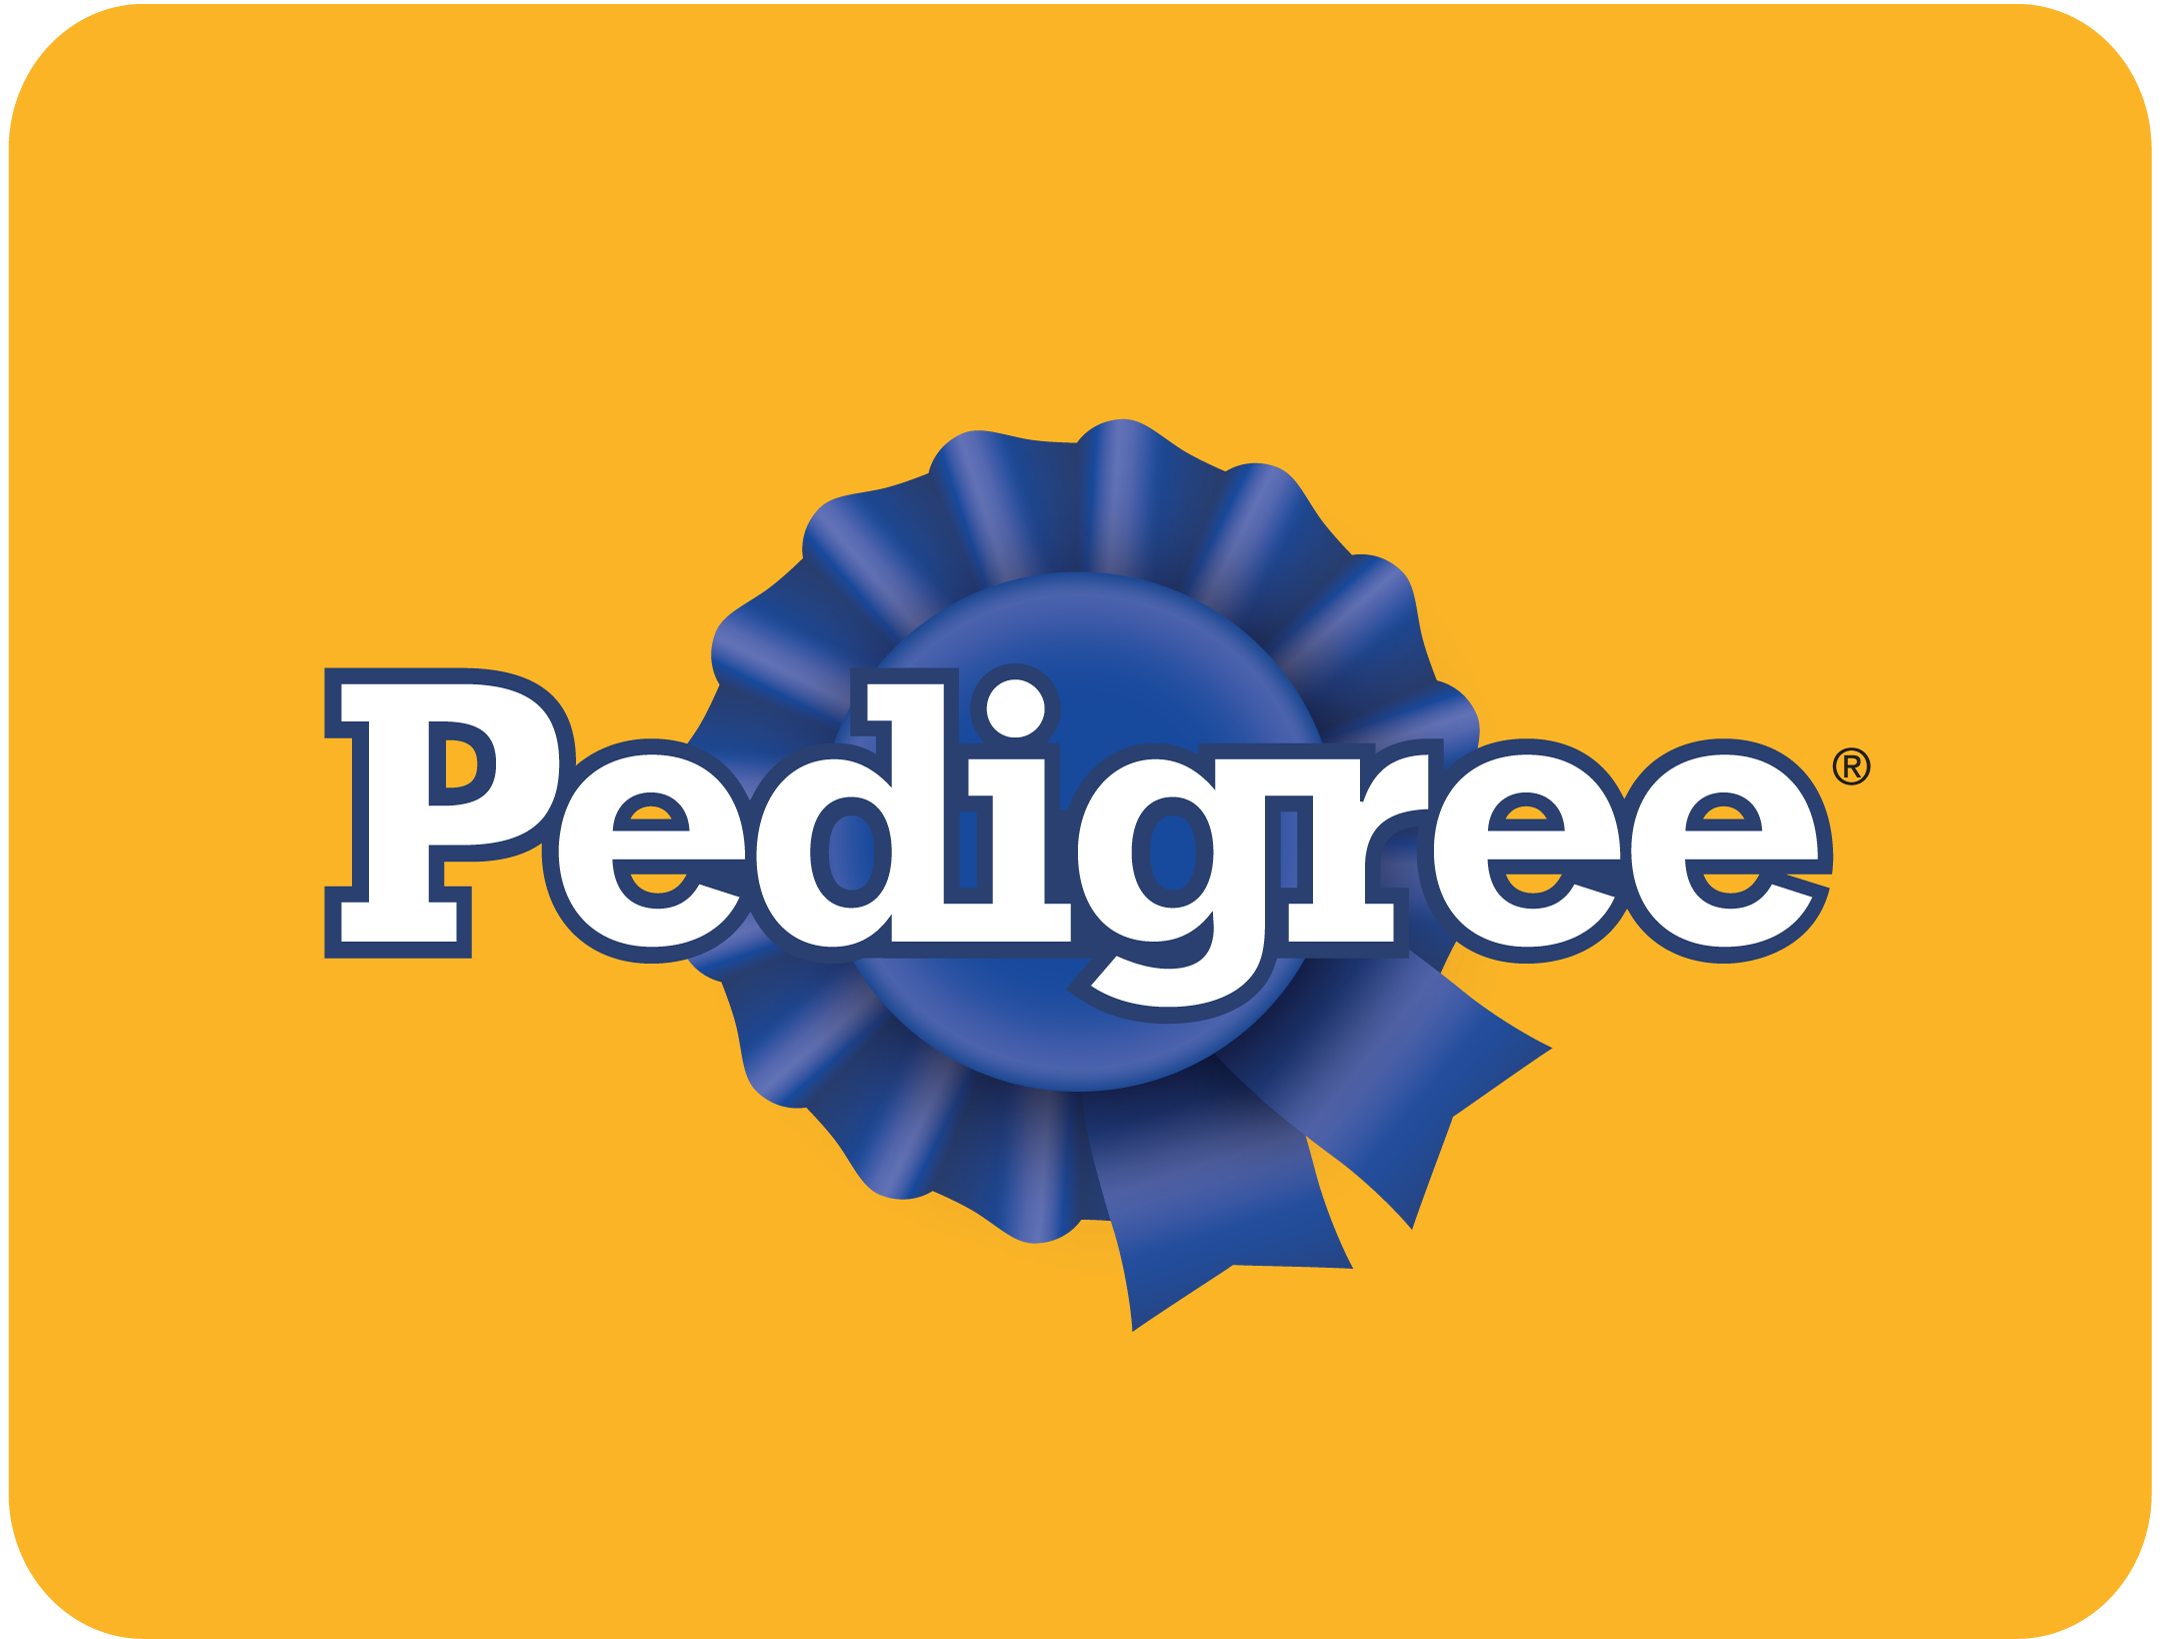 pedigree logo 5 - Pedigree Logo